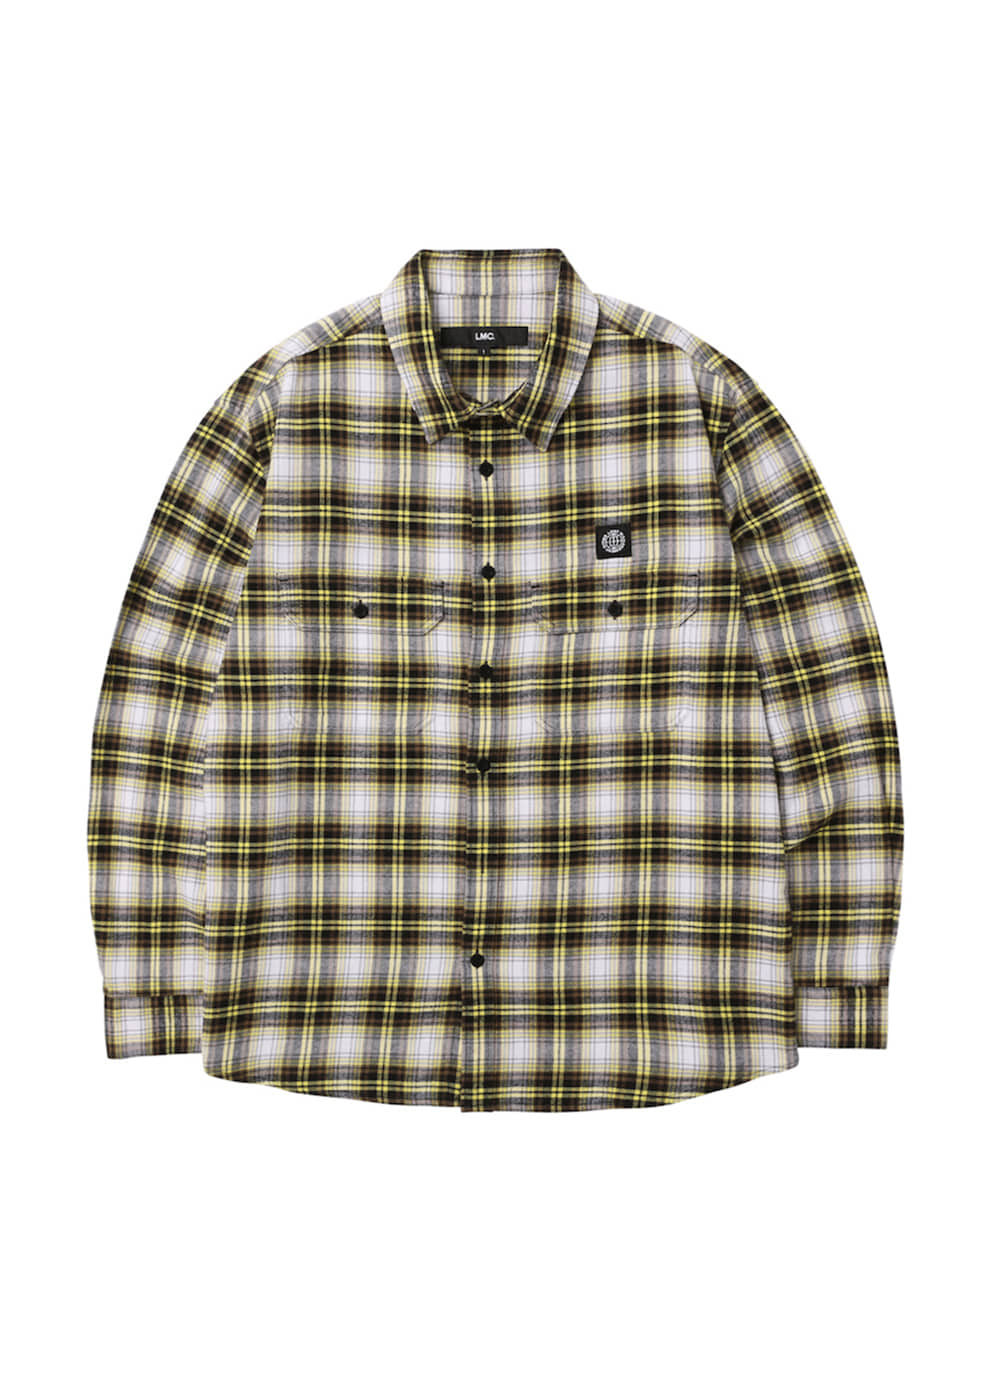 LMC B LINE PLAID SHIRT yellow